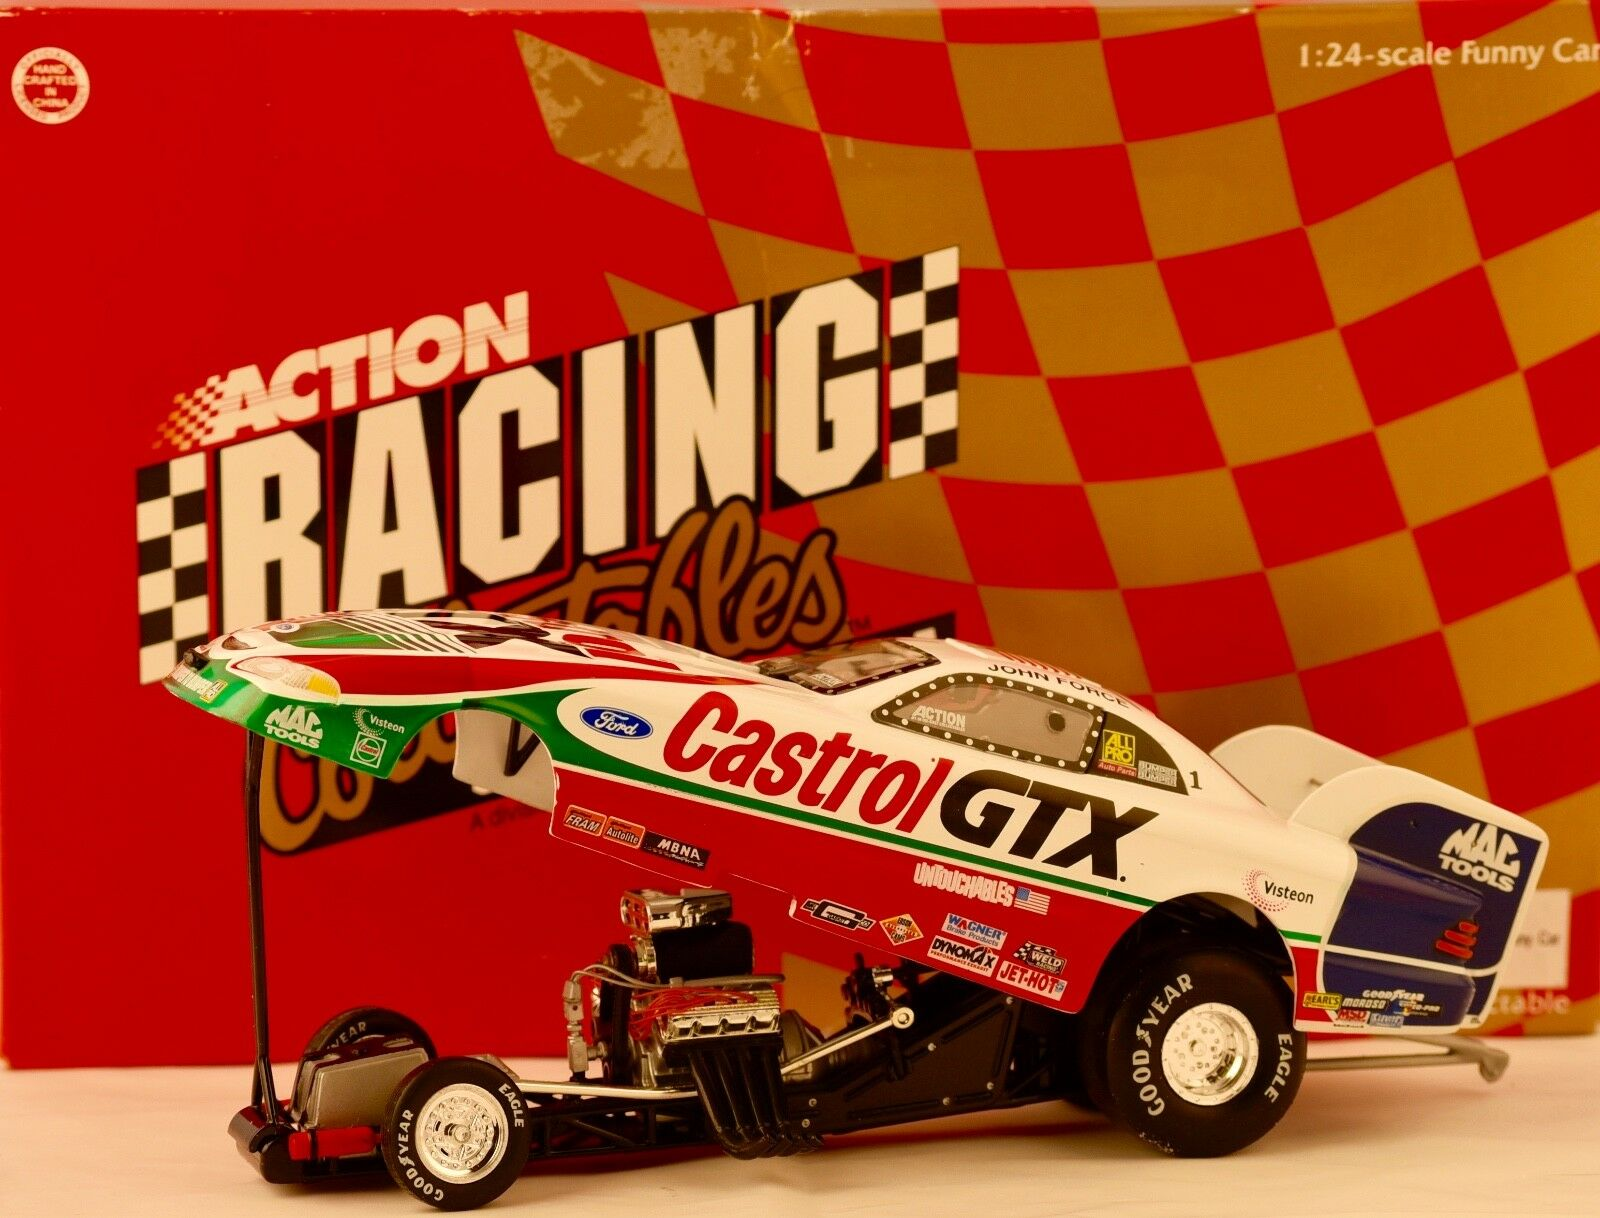 1998 Action NHRA John Force Signed - Castrol - Mustang Funny Car 1 24 Scale Rare